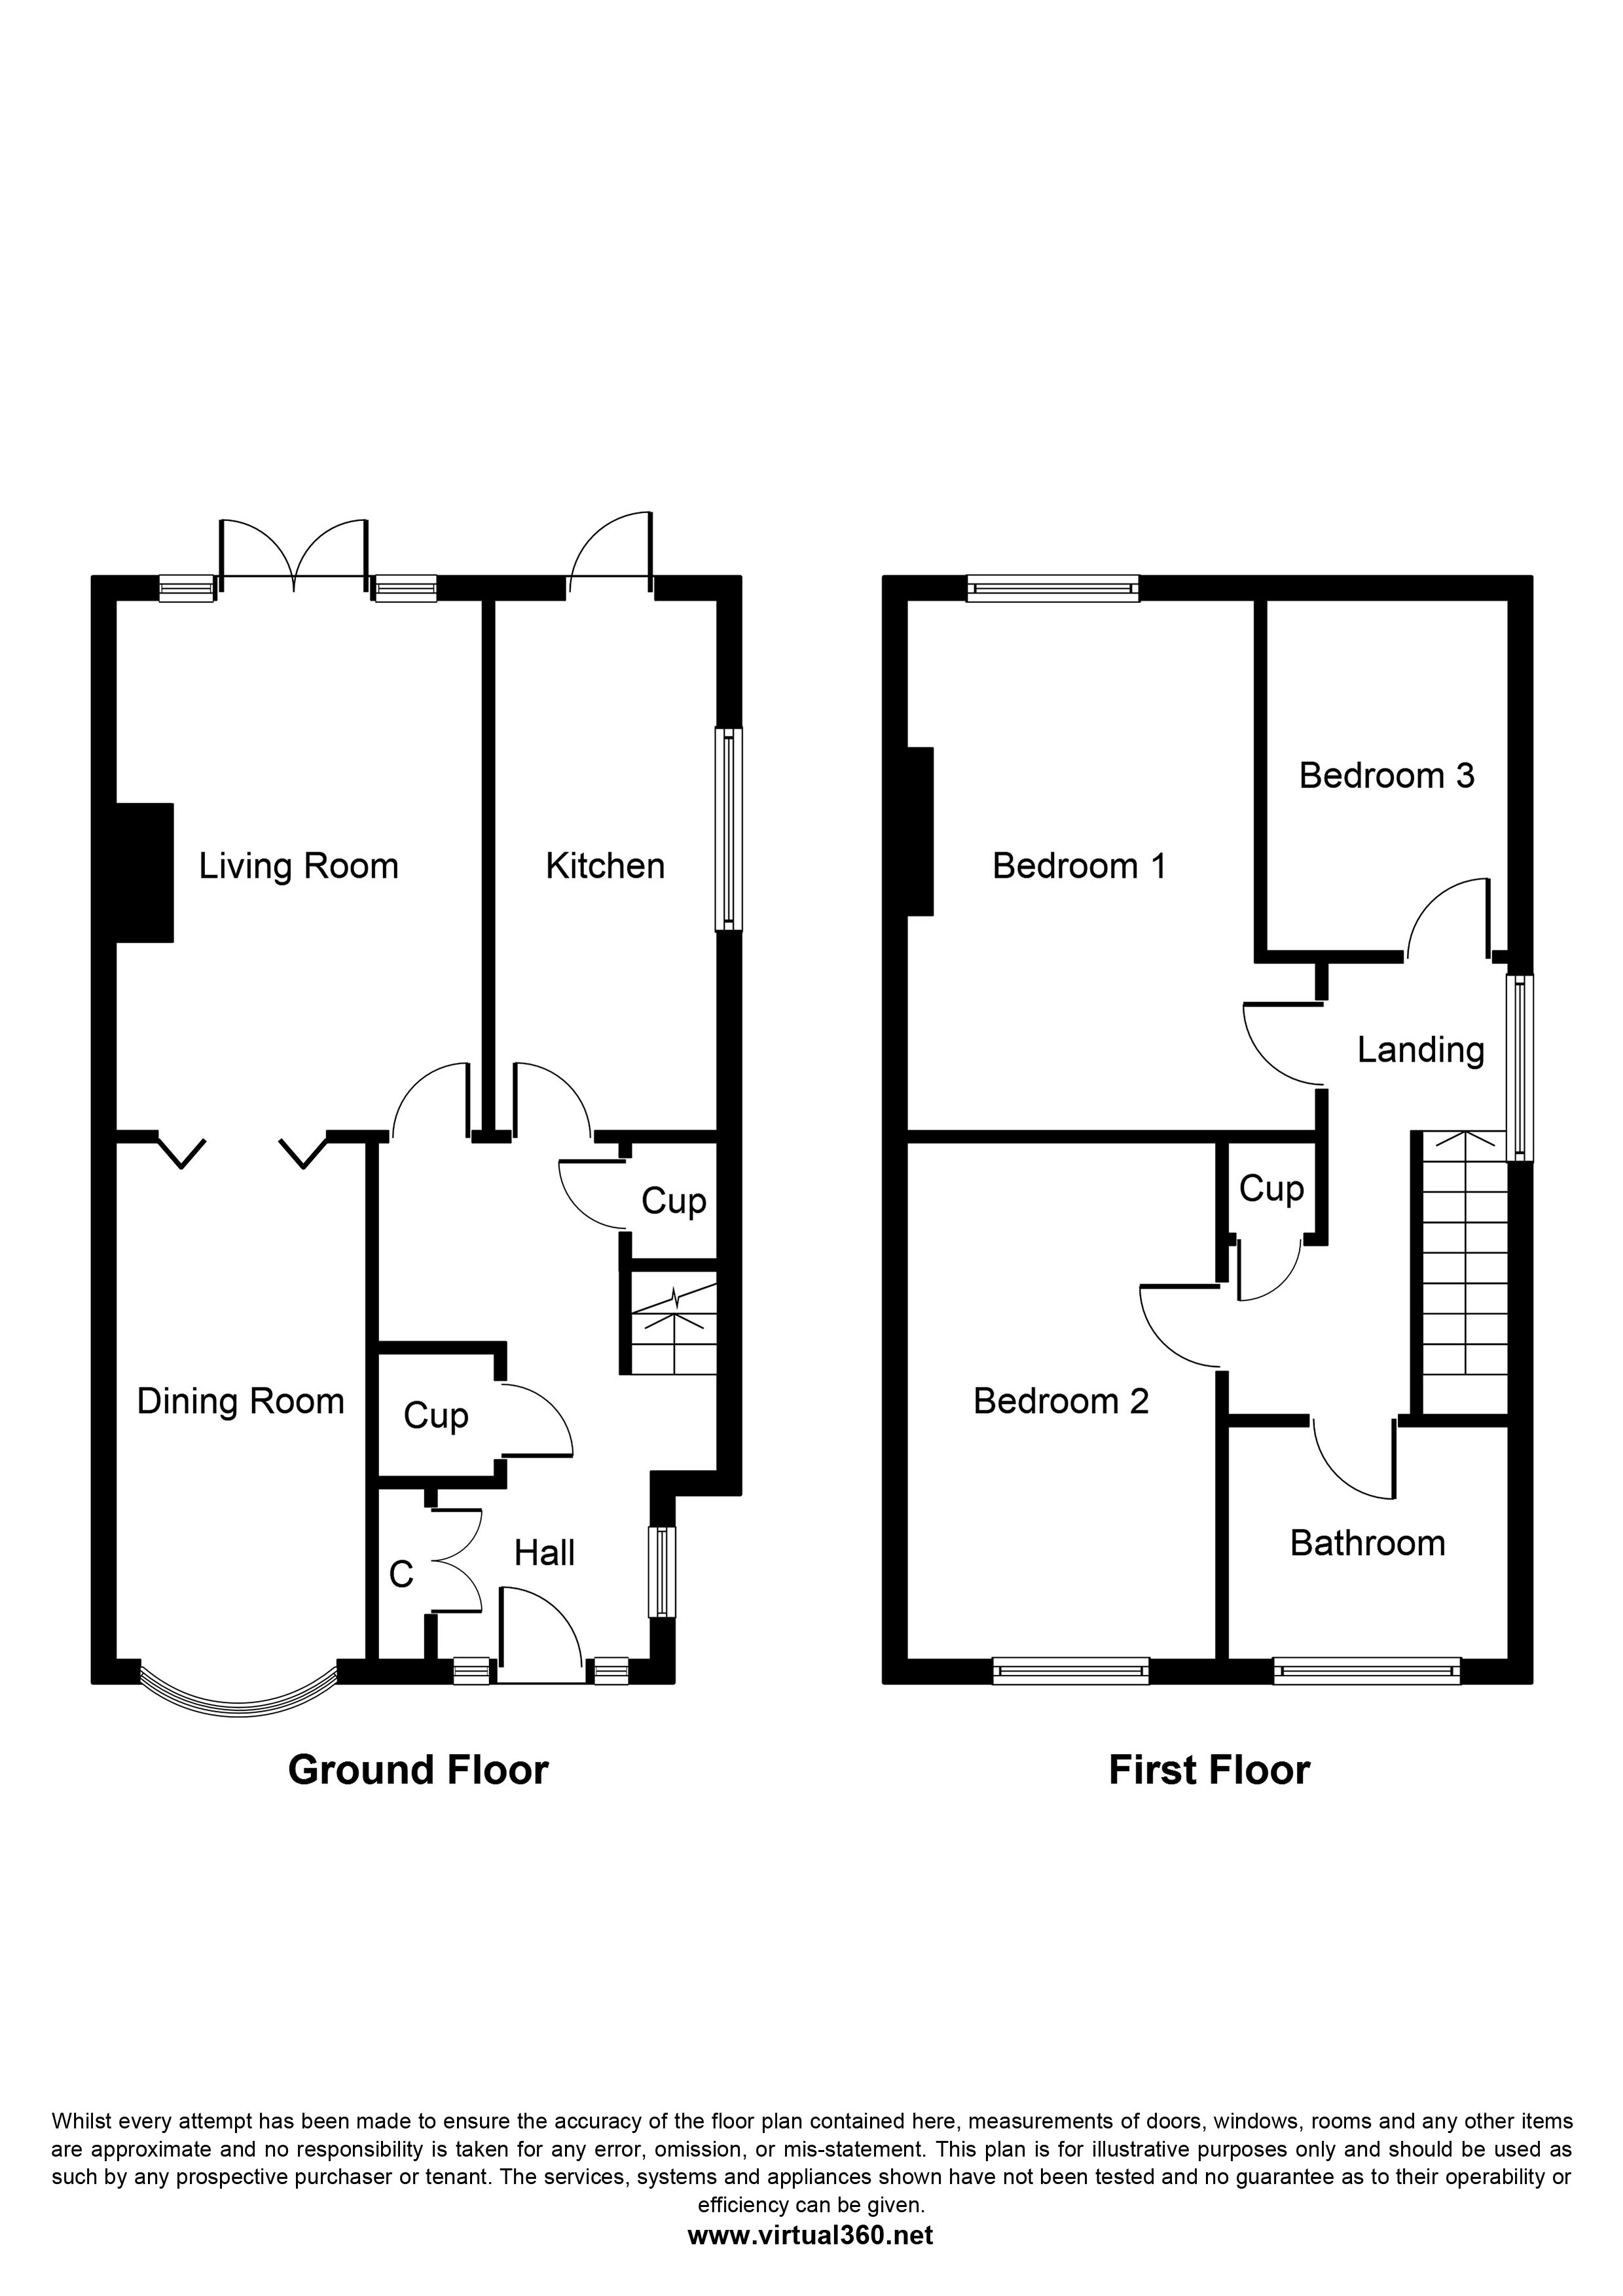 Chimes Close, Birmingham floor plan